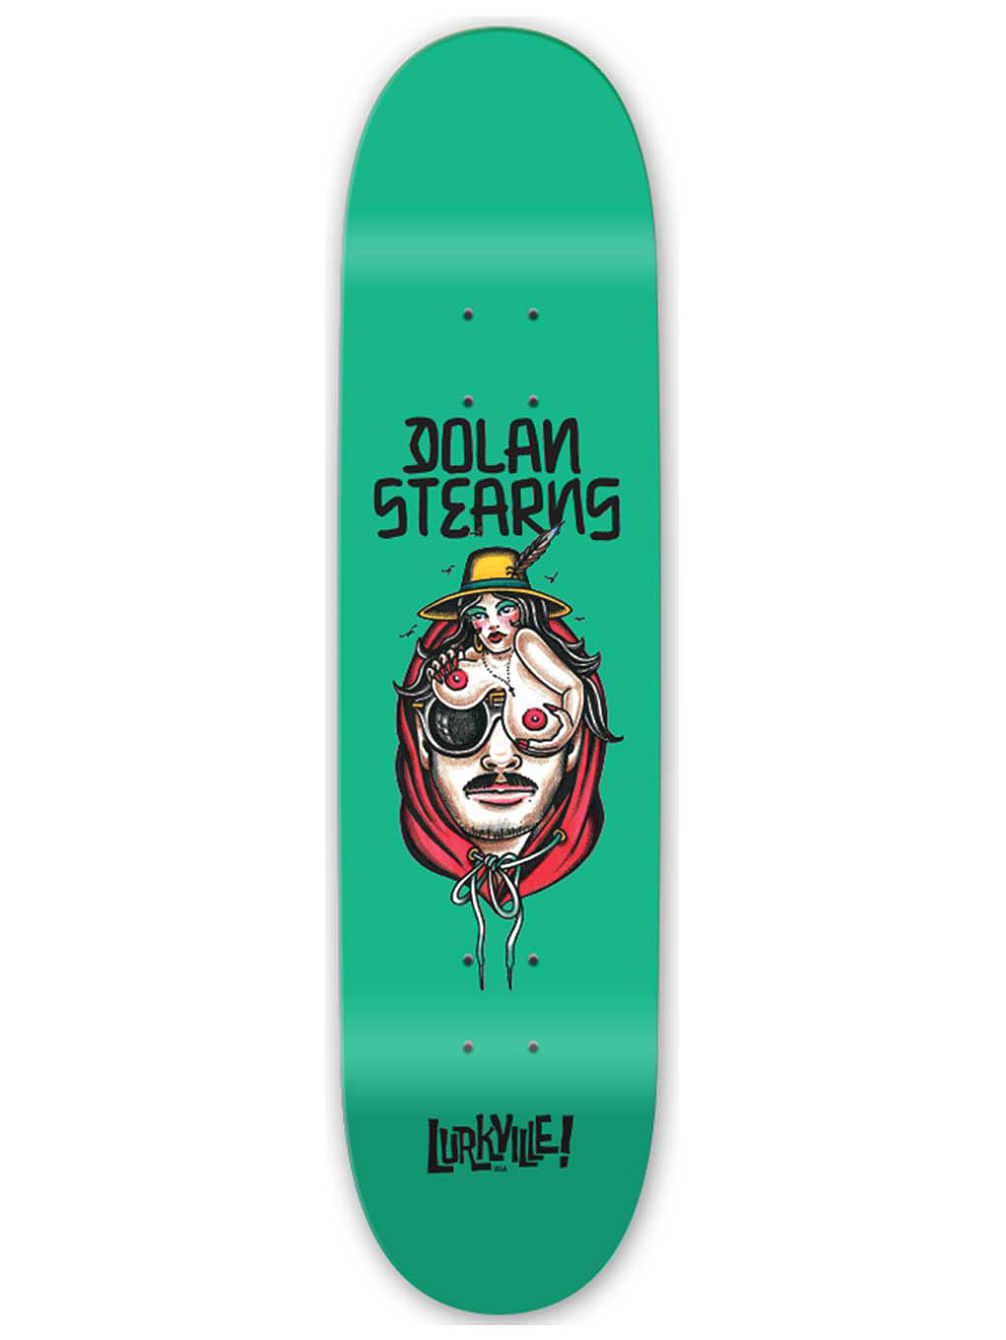 Stearns TT 8.5'' Skateboard Deck